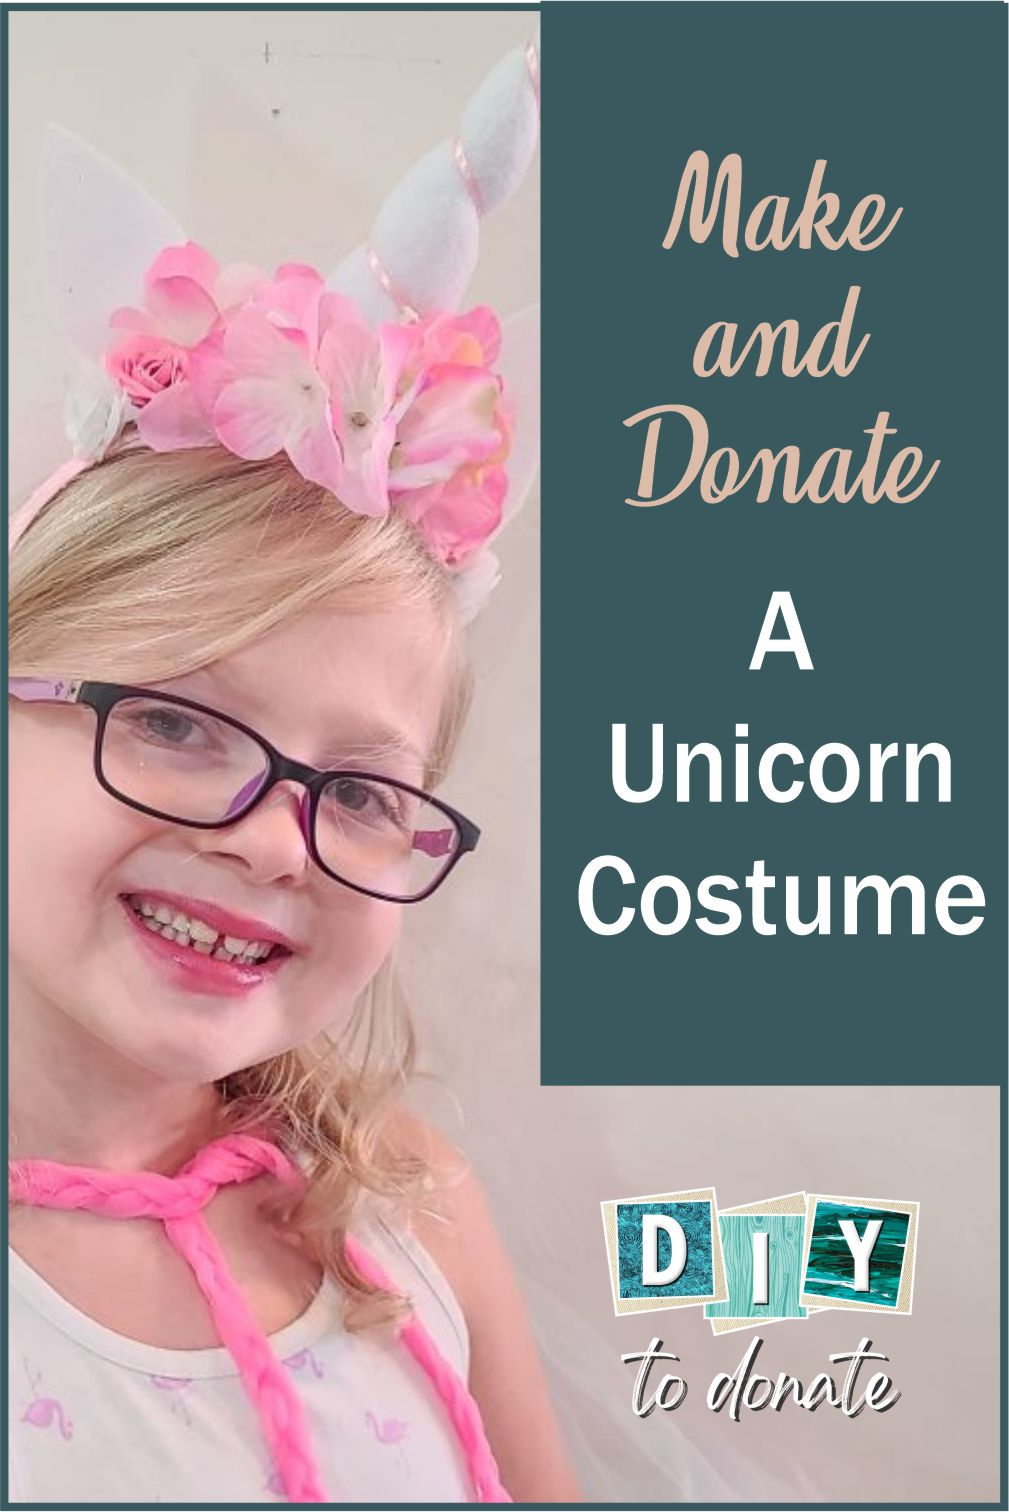 Instructions to make a unicorn dress up costume including a headband, cape, purse and more. Make extra to donate to girls in need. #diytodonate #unicorns #unicorndressup #dressup #donatecostumes #diy #donate #giveback #unicorncostume #diyunicorncostume #helpers #fun #kidsdressup